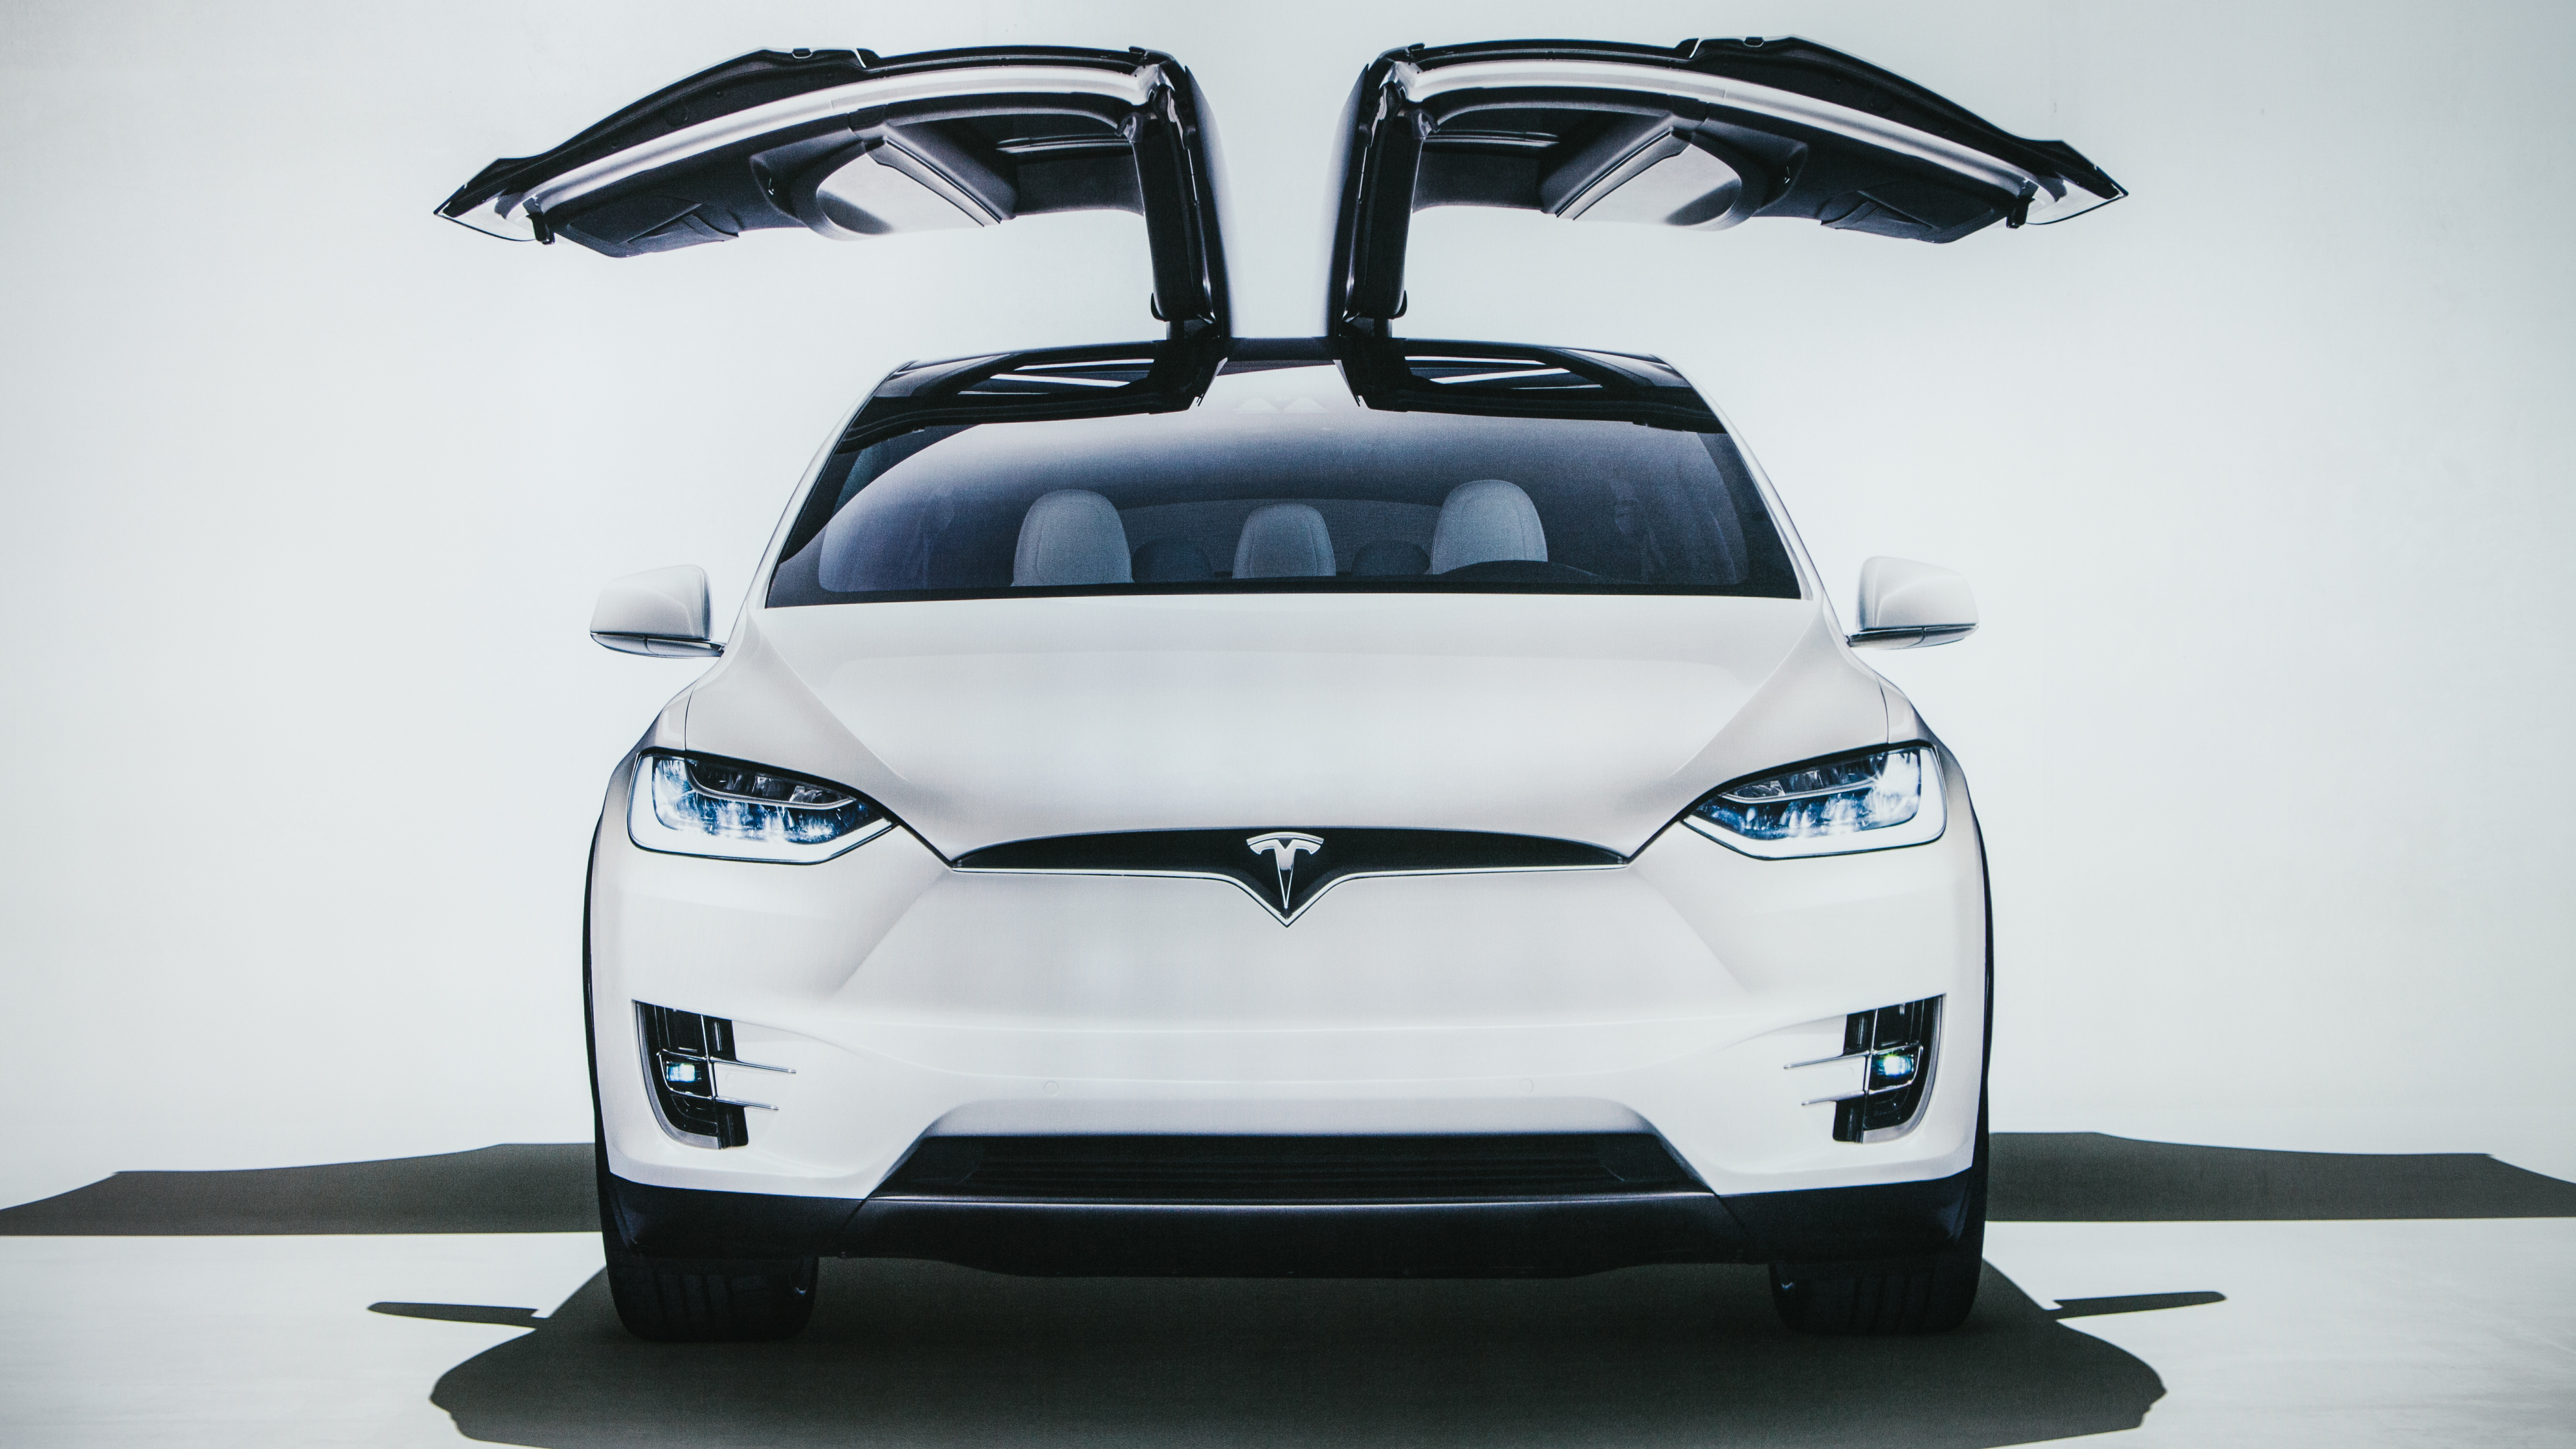 Newcomer Tesla's electric car technology has already shifted the balance among established players.